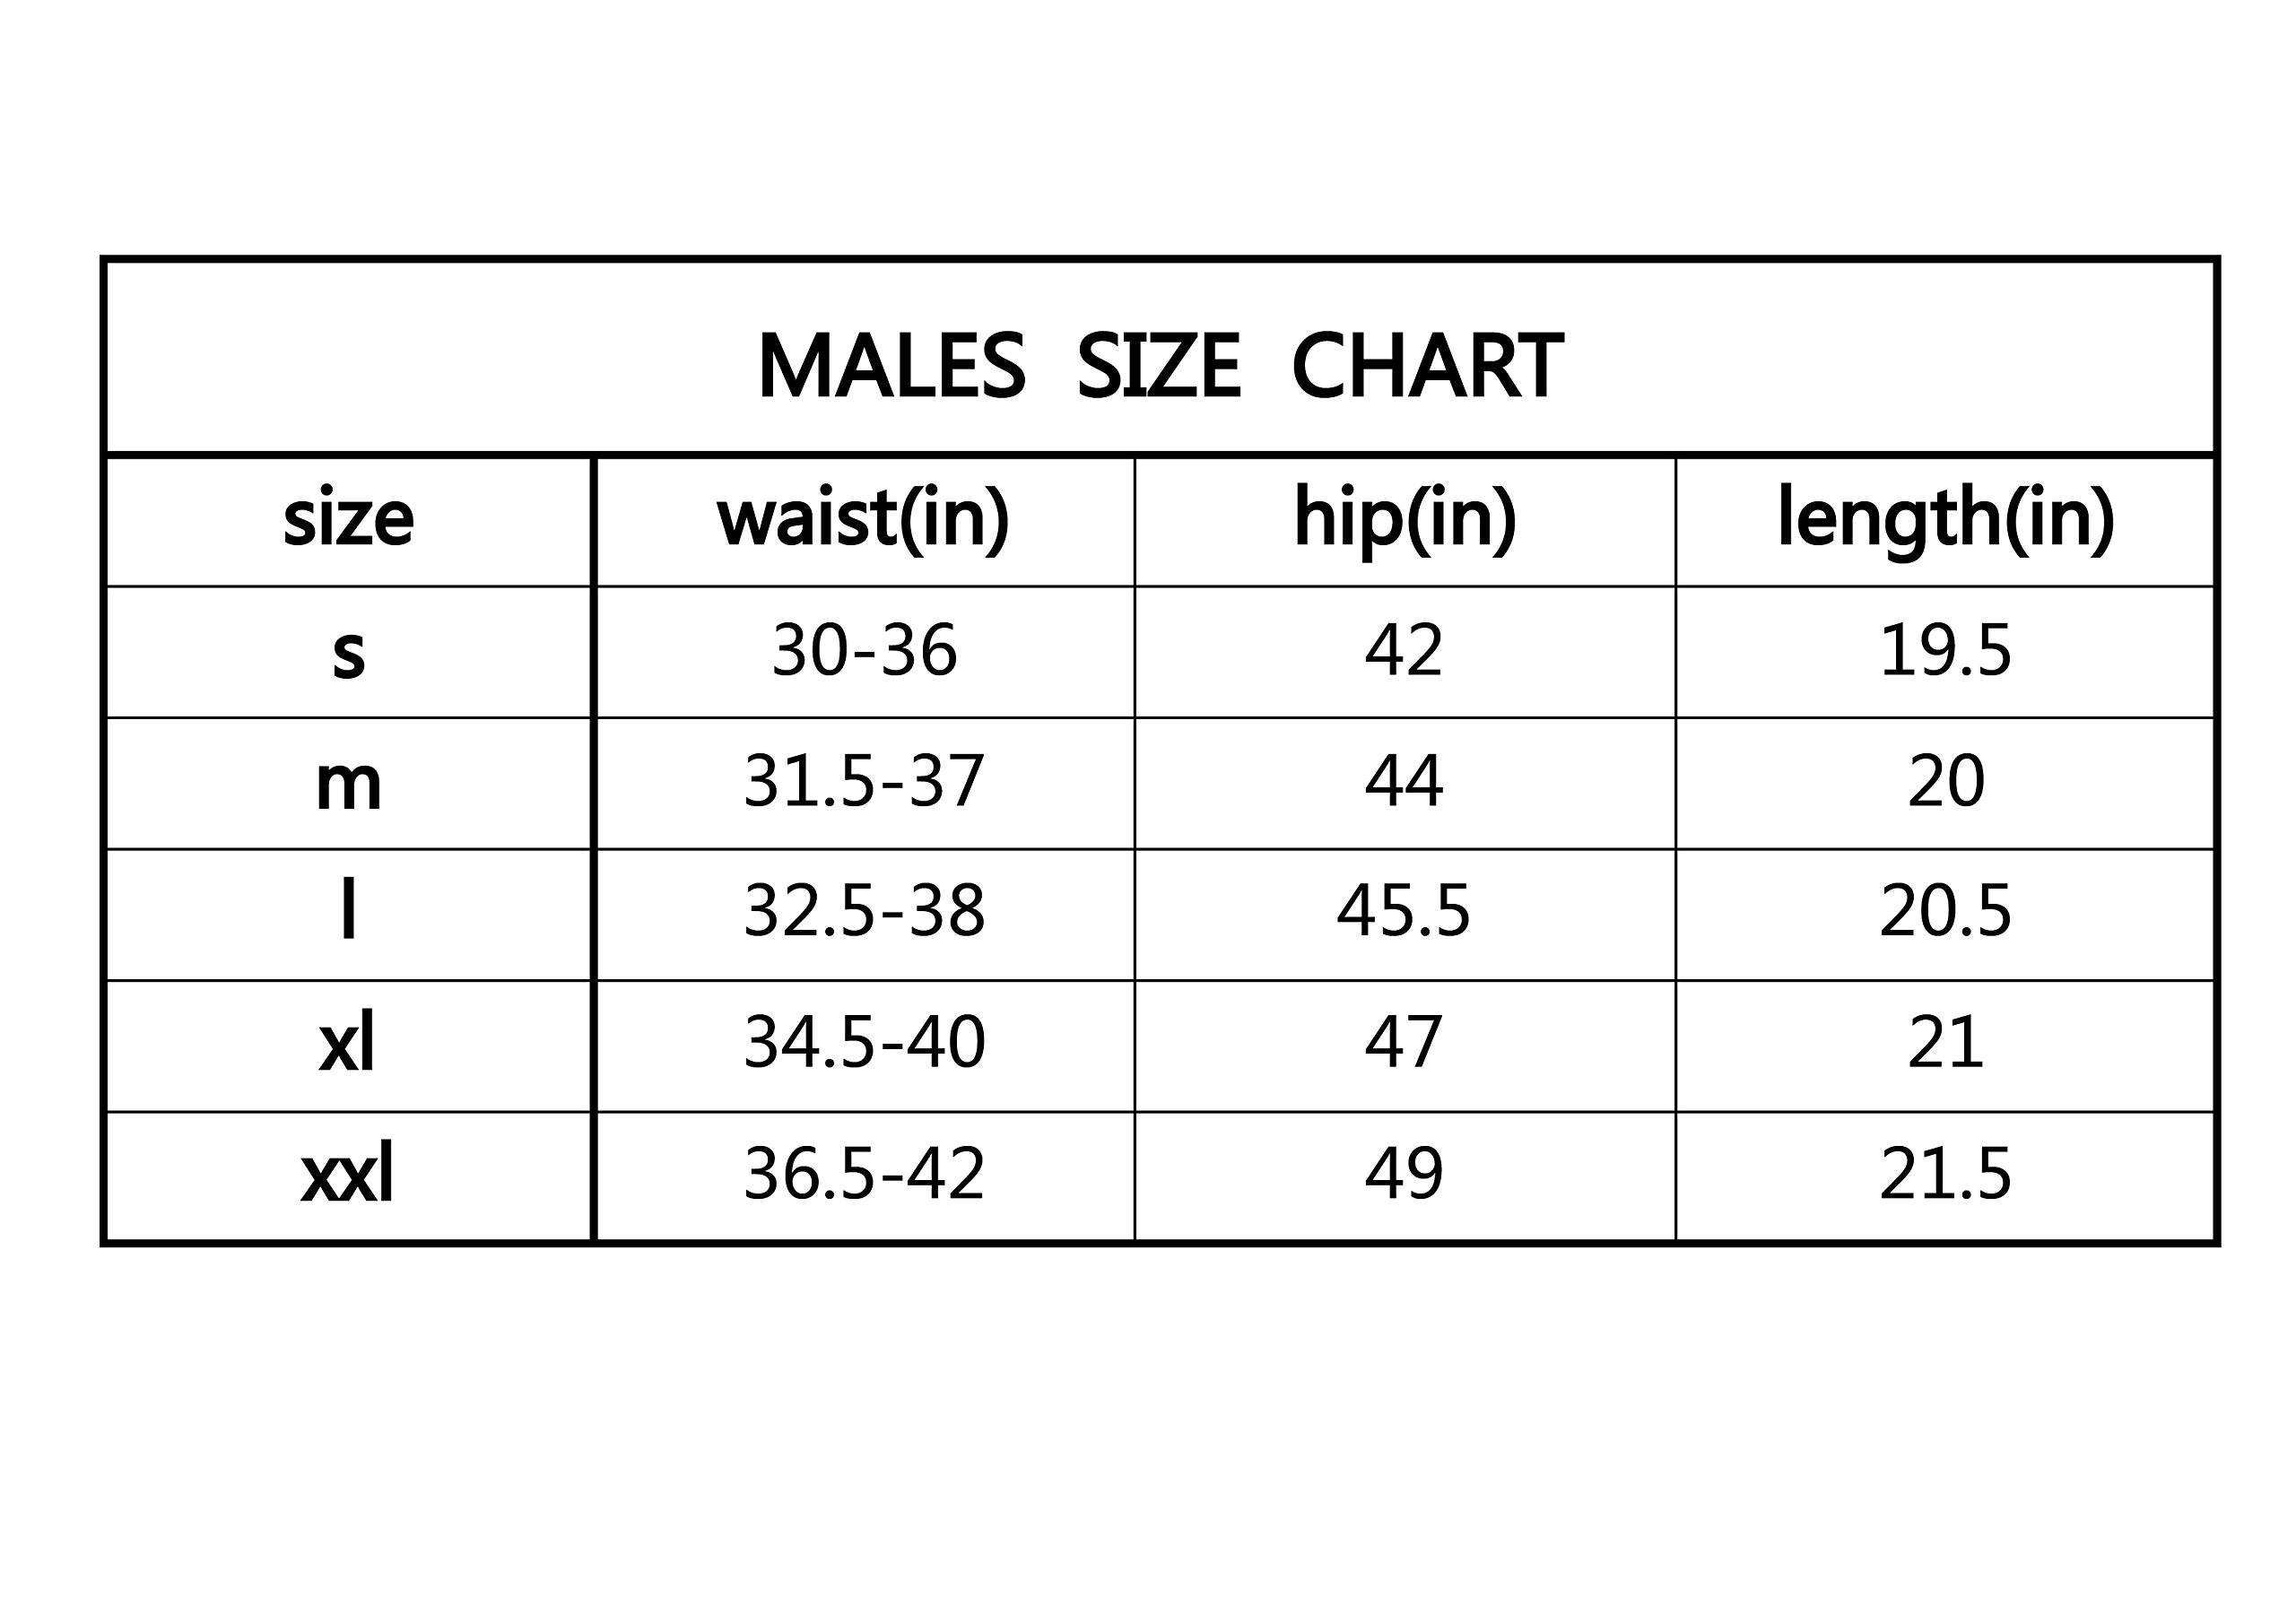 Cicily Men's Swim Trunks Sloth With Pijama Beach Board Shorts Swimming Short Pants Running Sports Surffing Shorts -